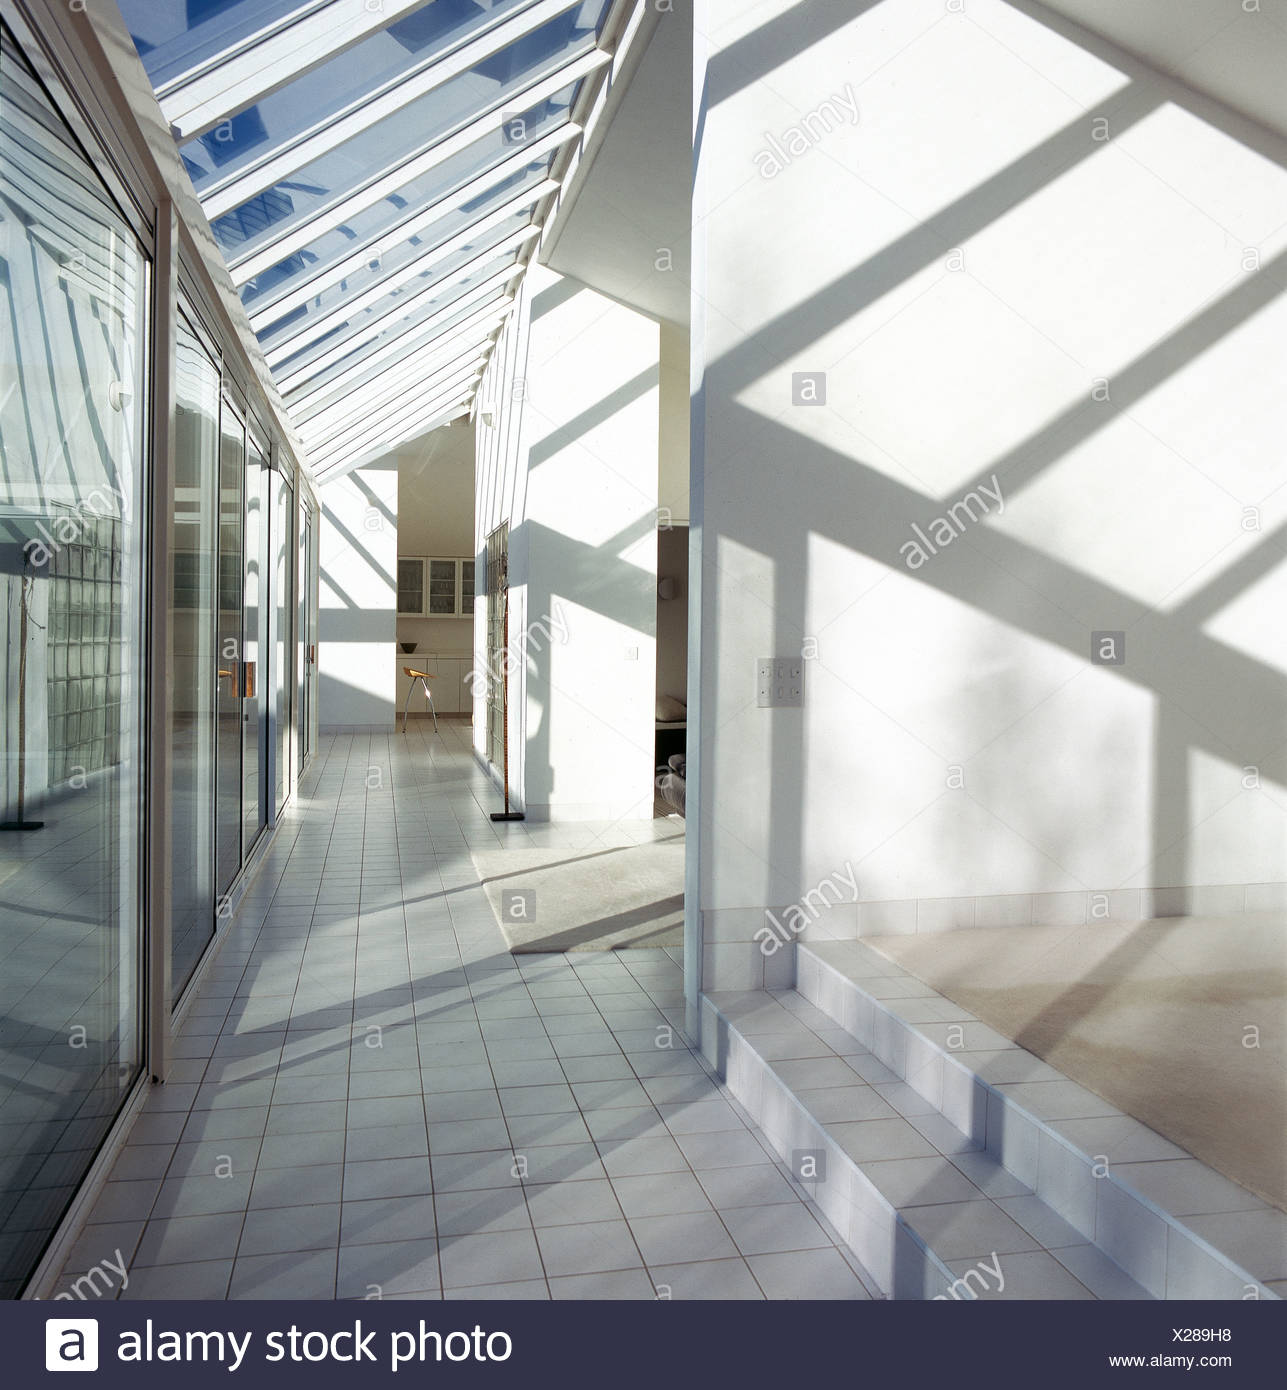 Sliding glass doors in minimalist hallway with white tiled floor and glass roof - Stock Image & Sliding Roof Stock Photos u0026 Sliding Roof Stock Images - Alamy